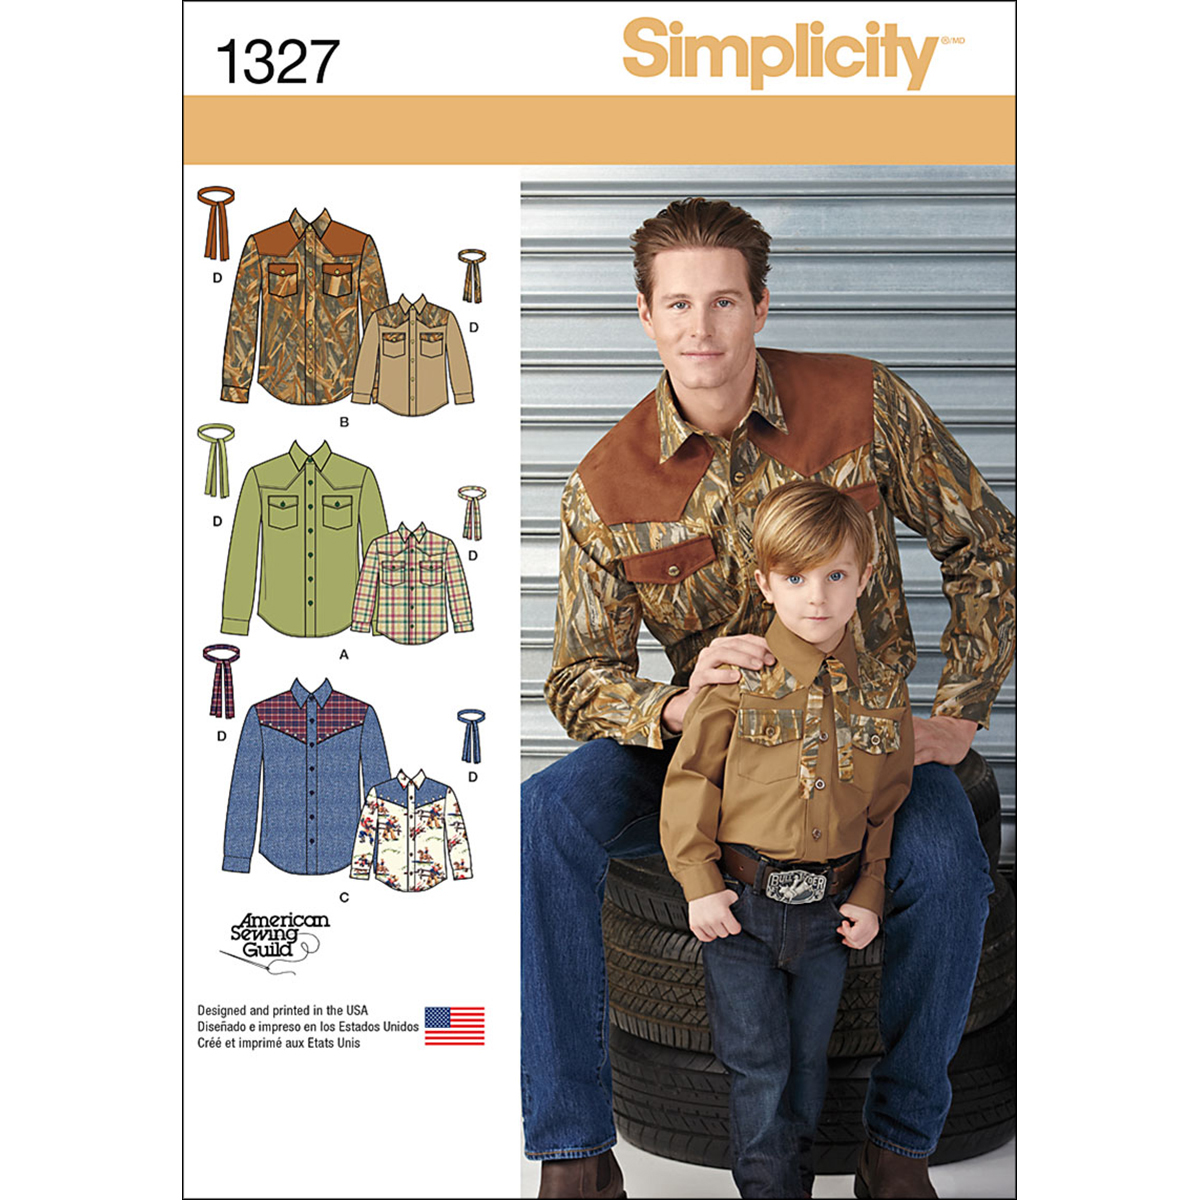 Simplicity Pattern 1327A S - L / S -Men Boy Tops Vests